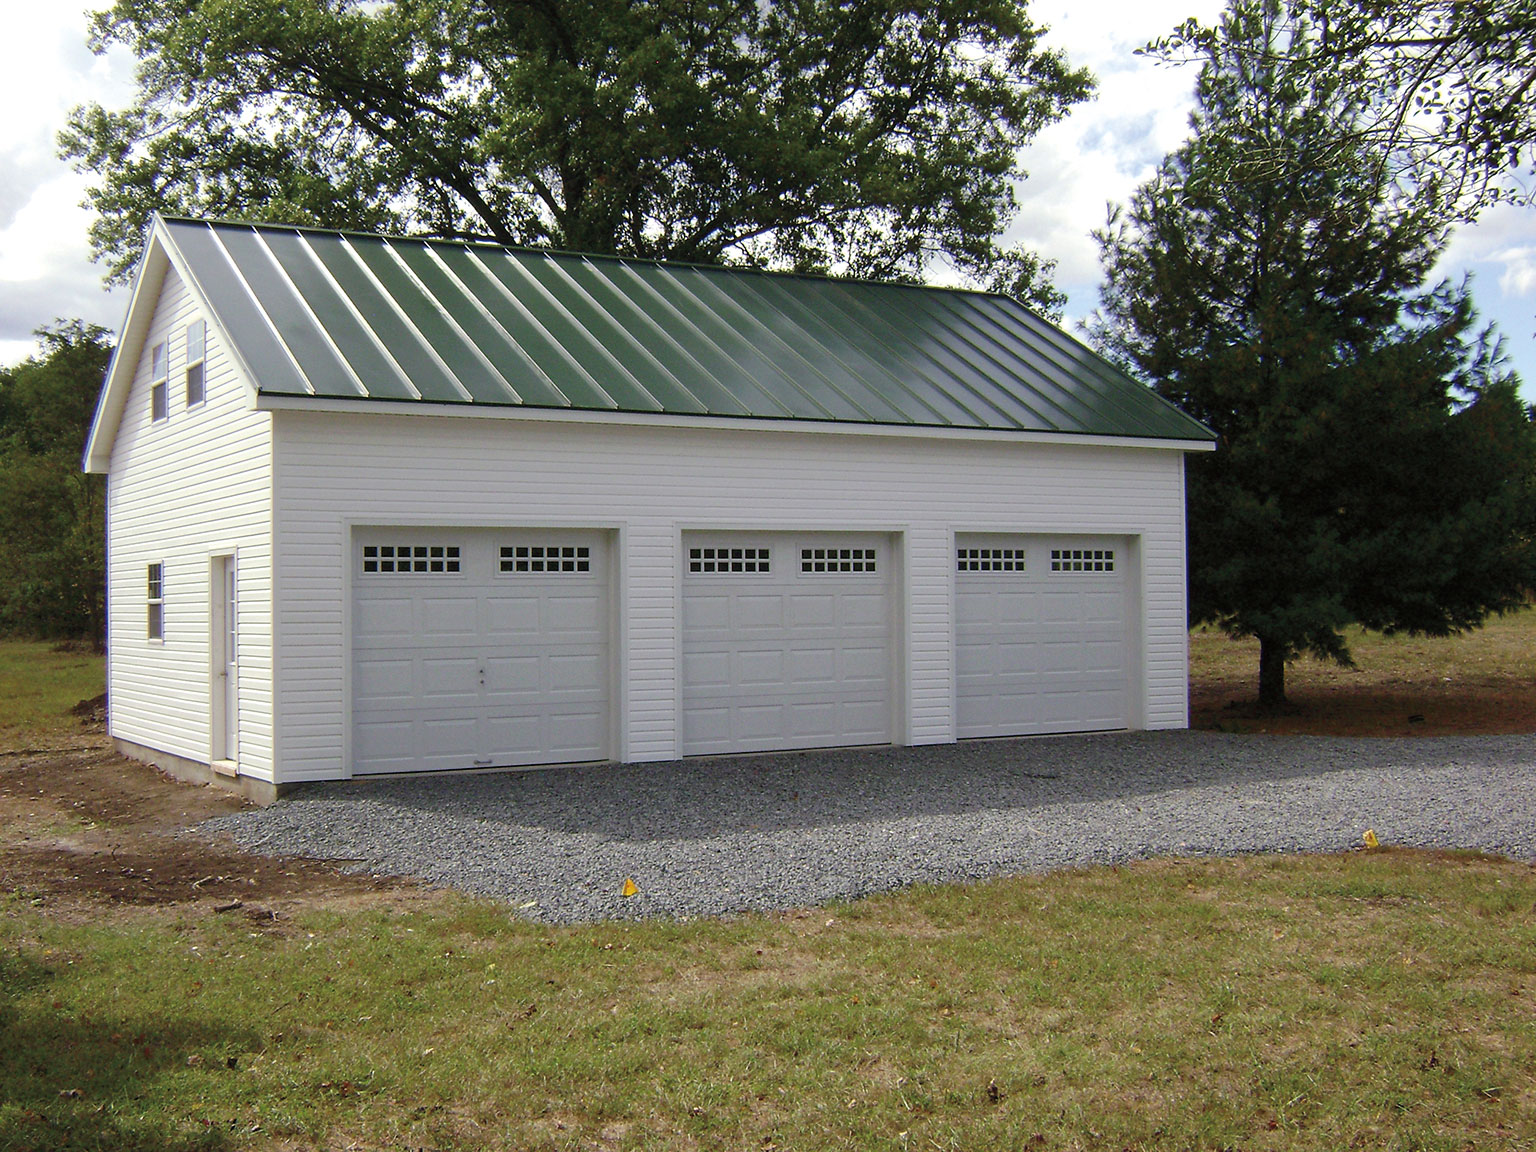 Farmhouse 1 o in addition Built On Site Garages as well Crestwood 14' X 8' Wood Storage Shed product 100281881 likewise 25 Metal Building Homes Interior Ideas together with Single Story Modern House Plans Small Means Practical. on barn style floor plans with loft